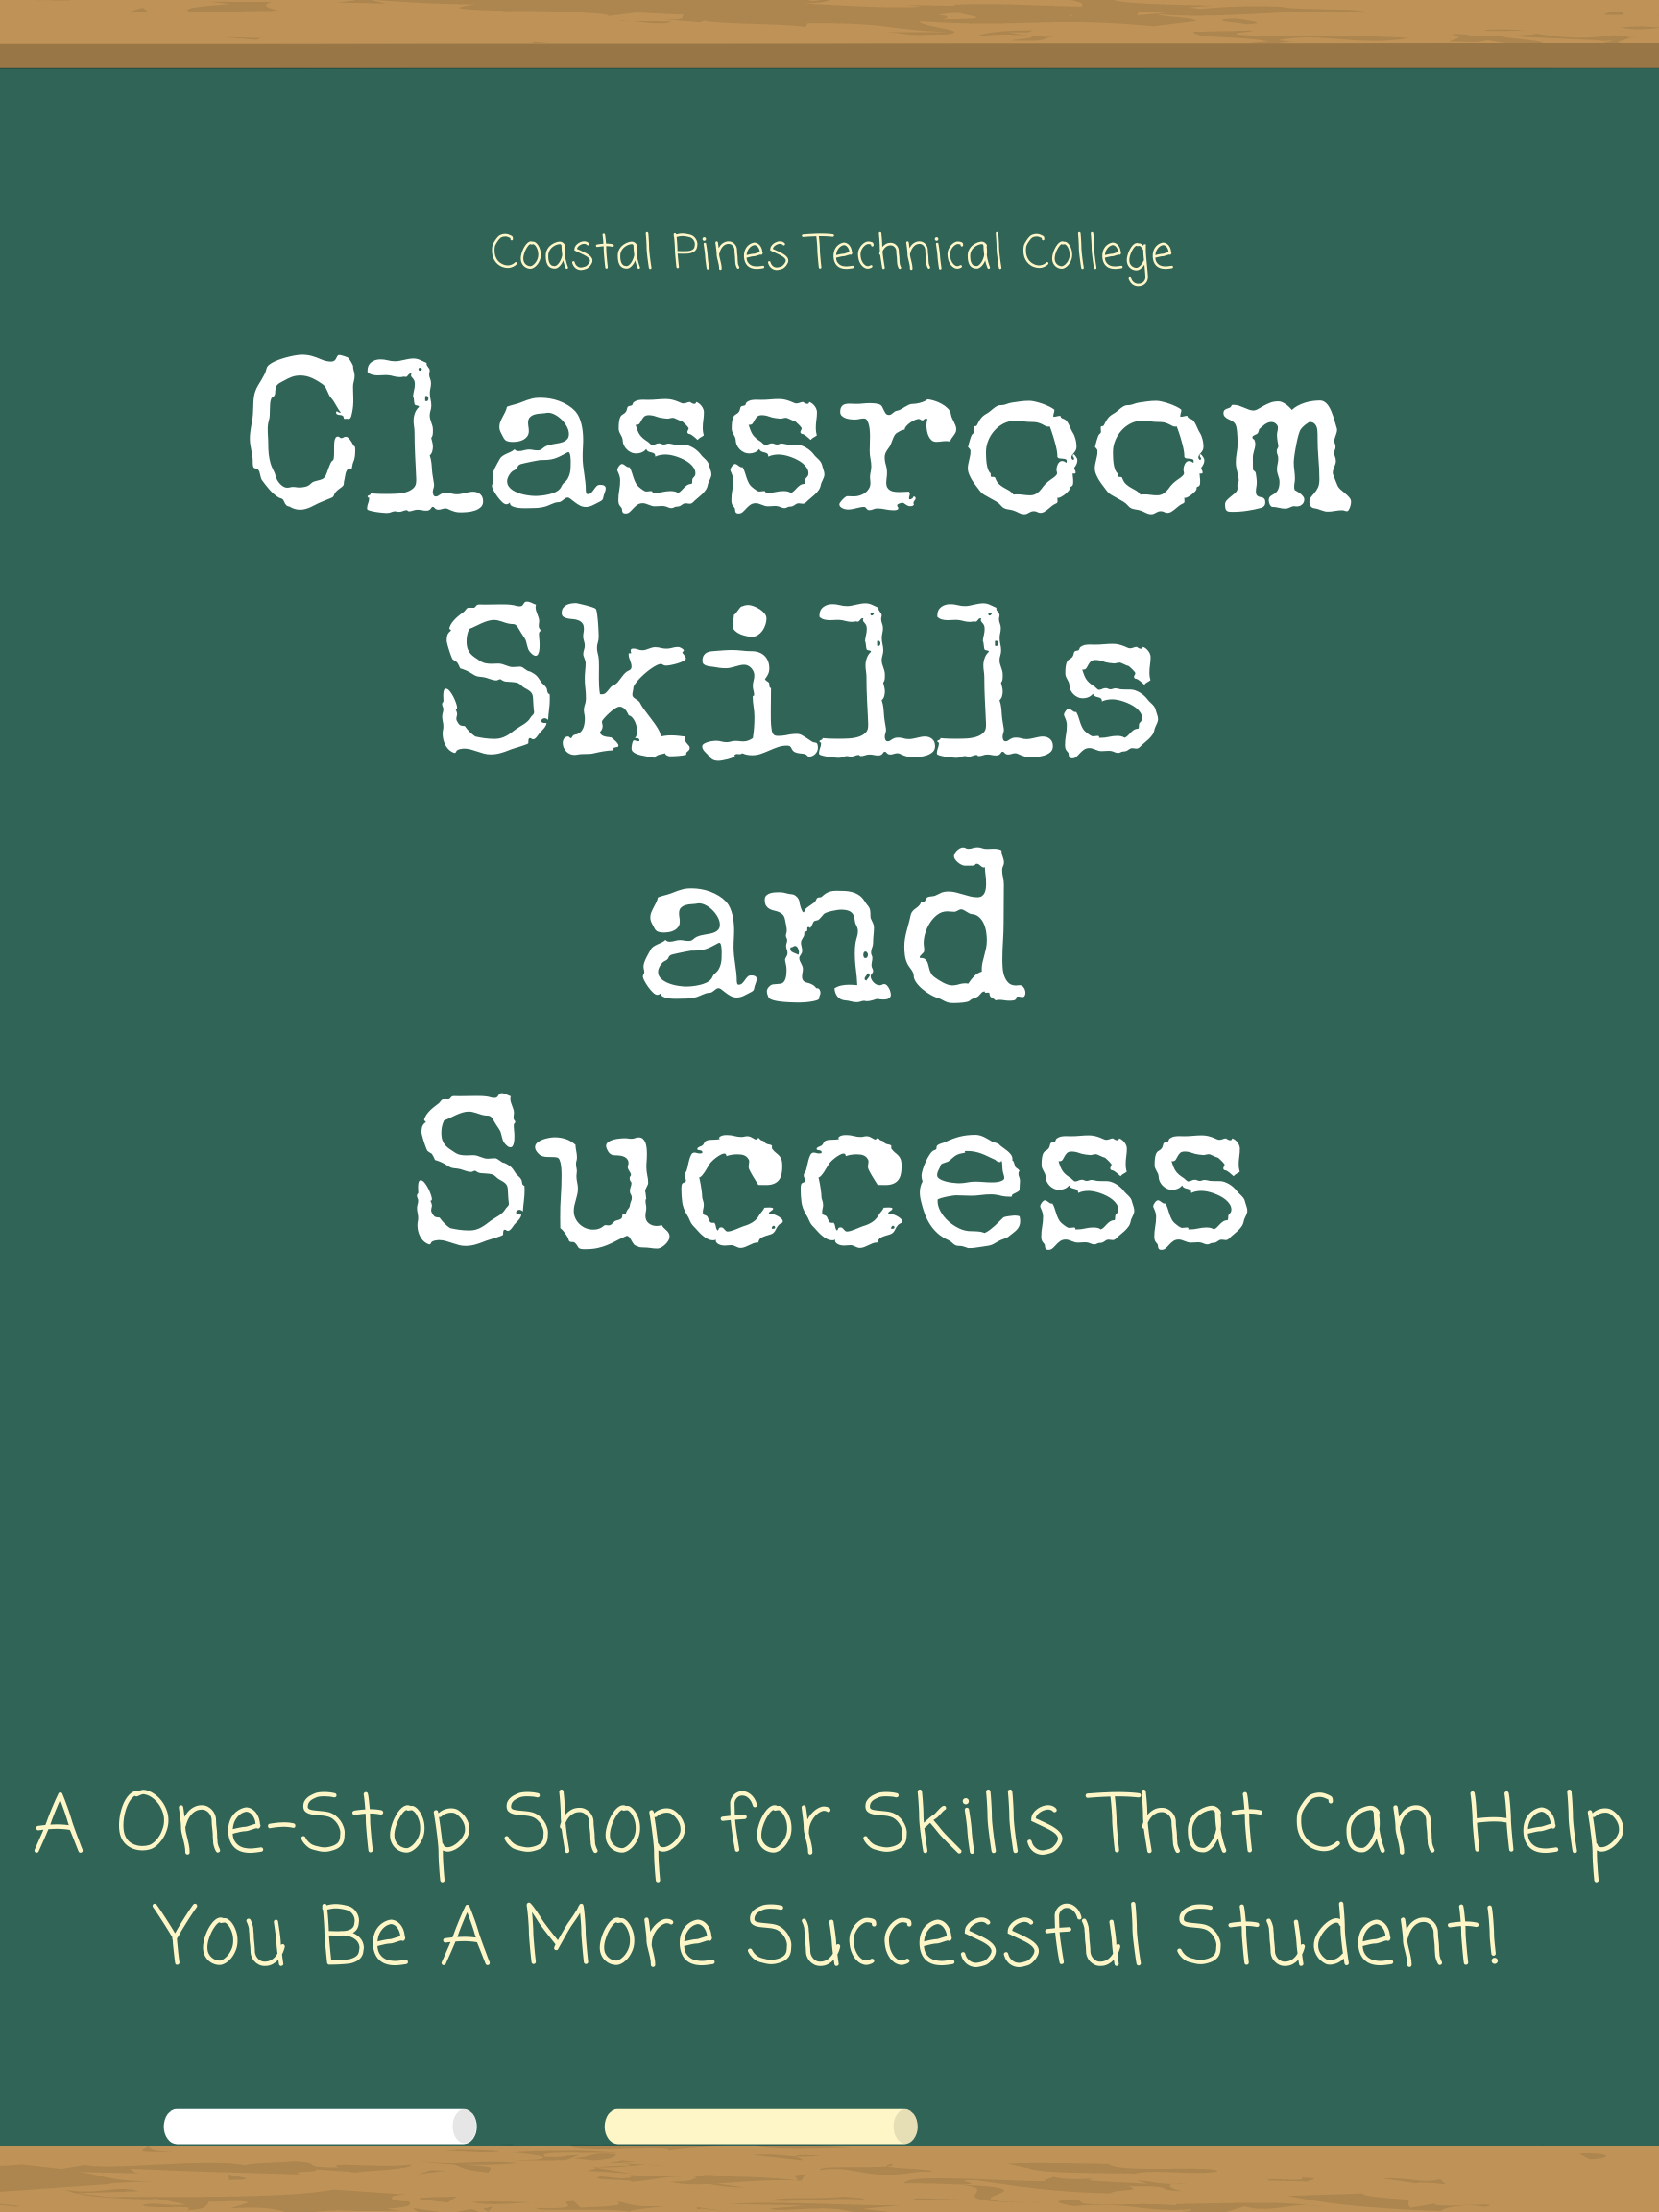 Coastal Pines Technical College Classroom  Skills  and Success A One-Stop Shop for Skills That Can Help You Be A More Successful Student!